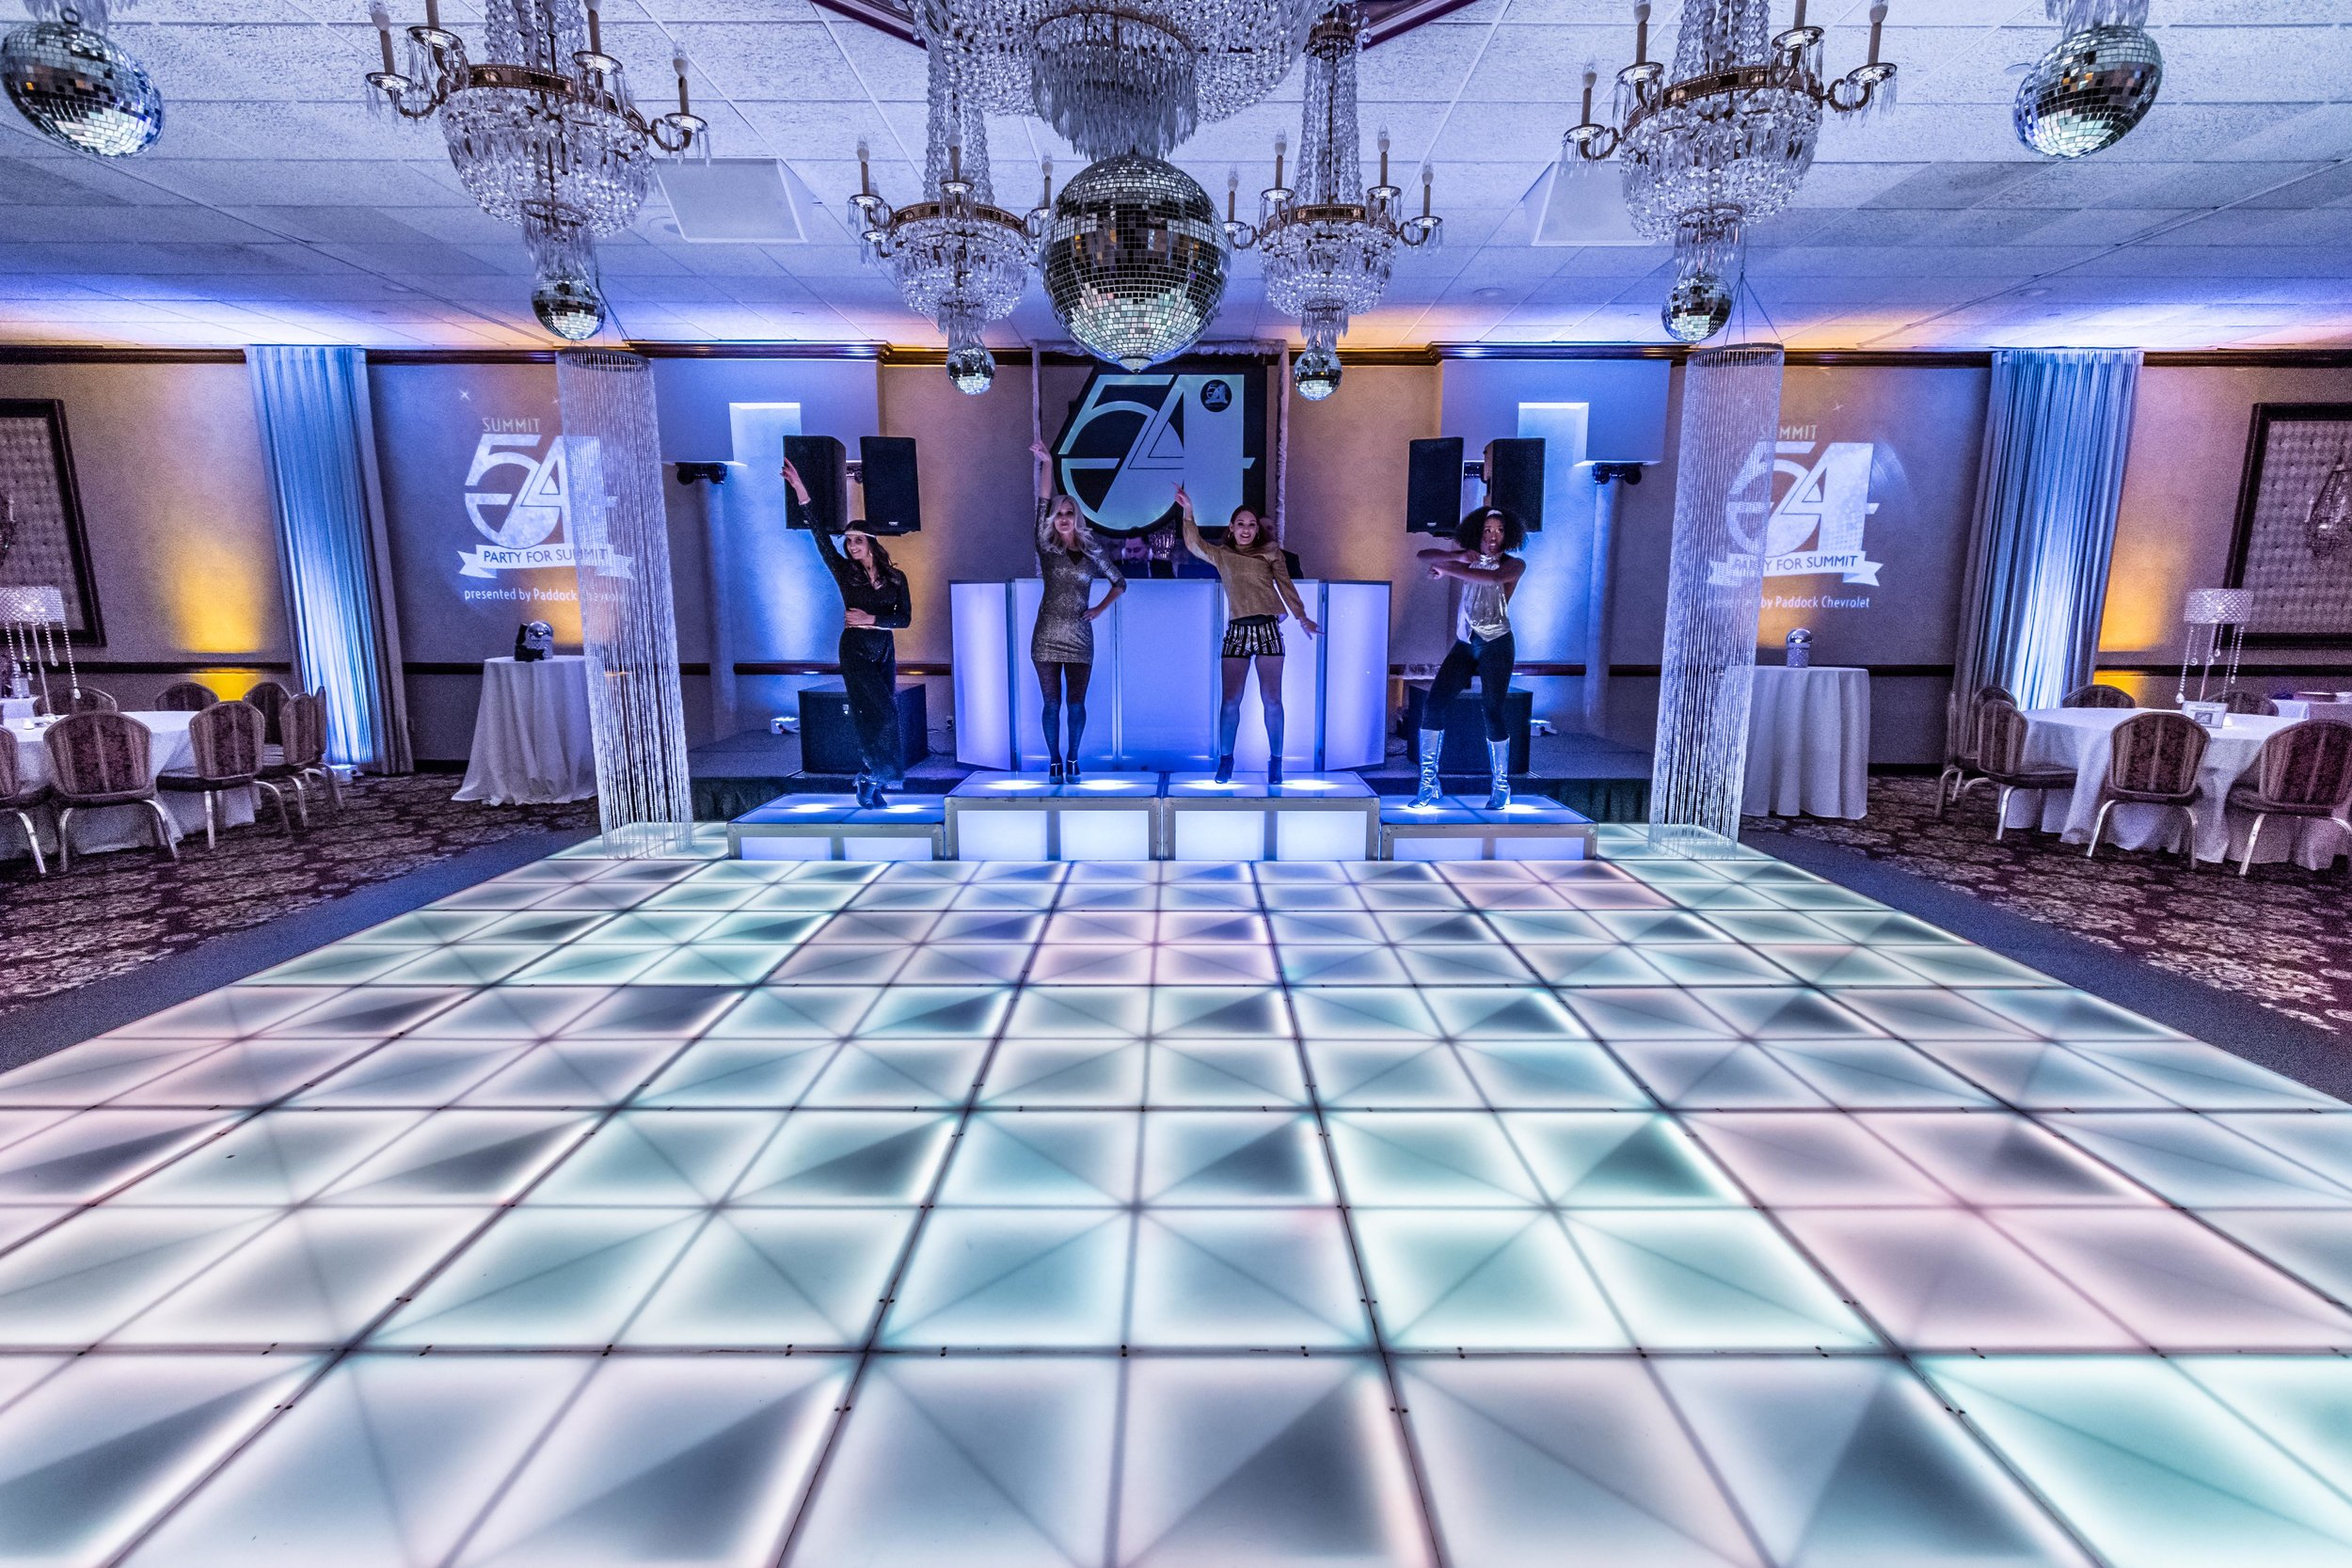 LED Dance Floor White.jpg